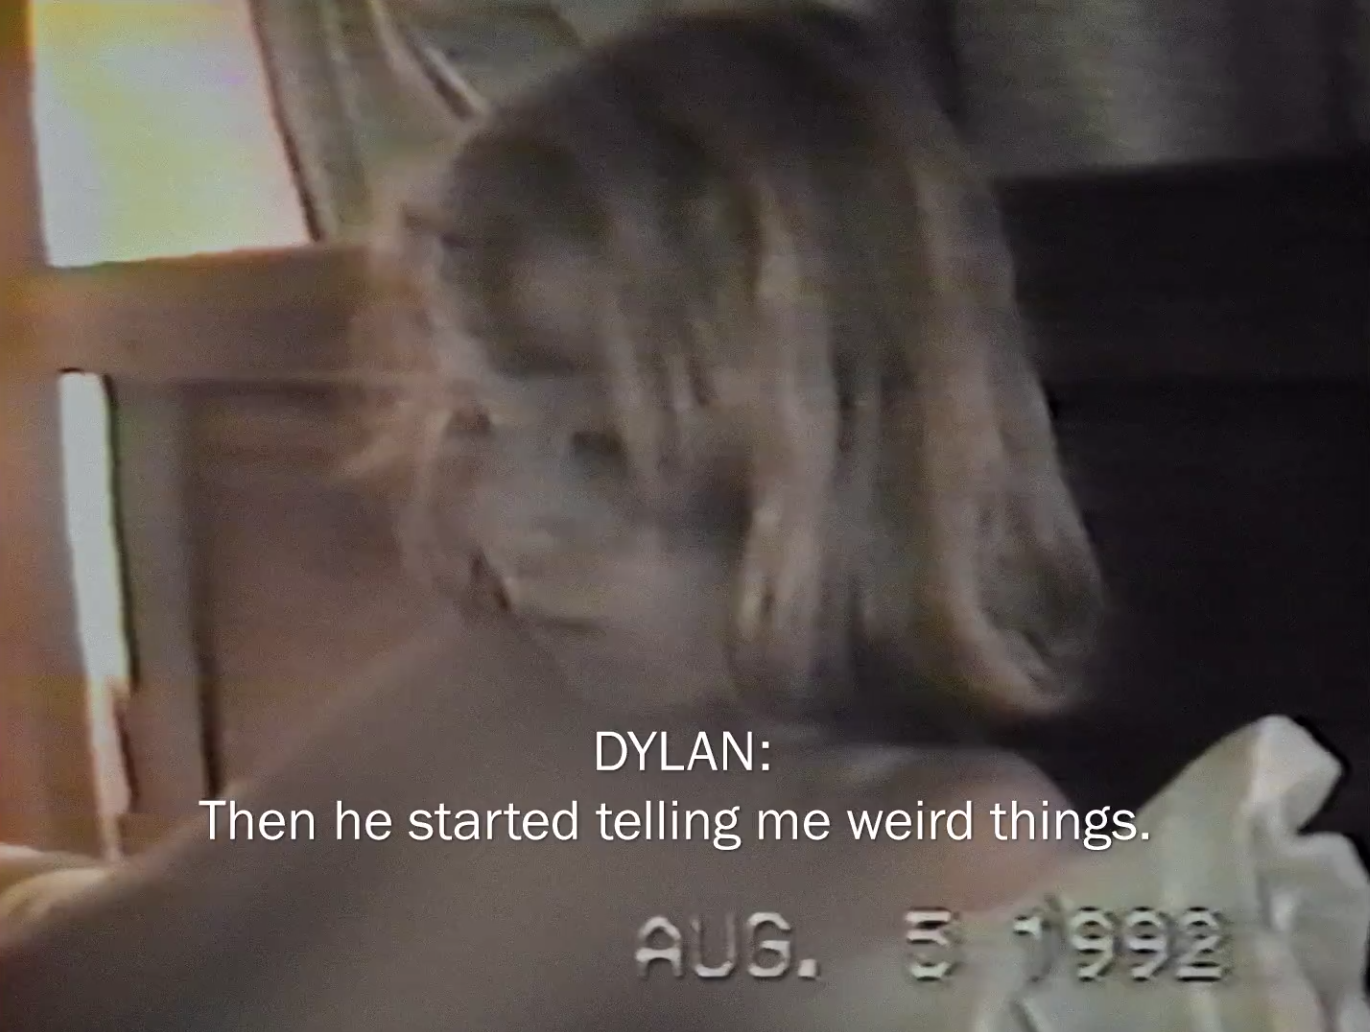 Archived footage of Dylan talking about her abuse